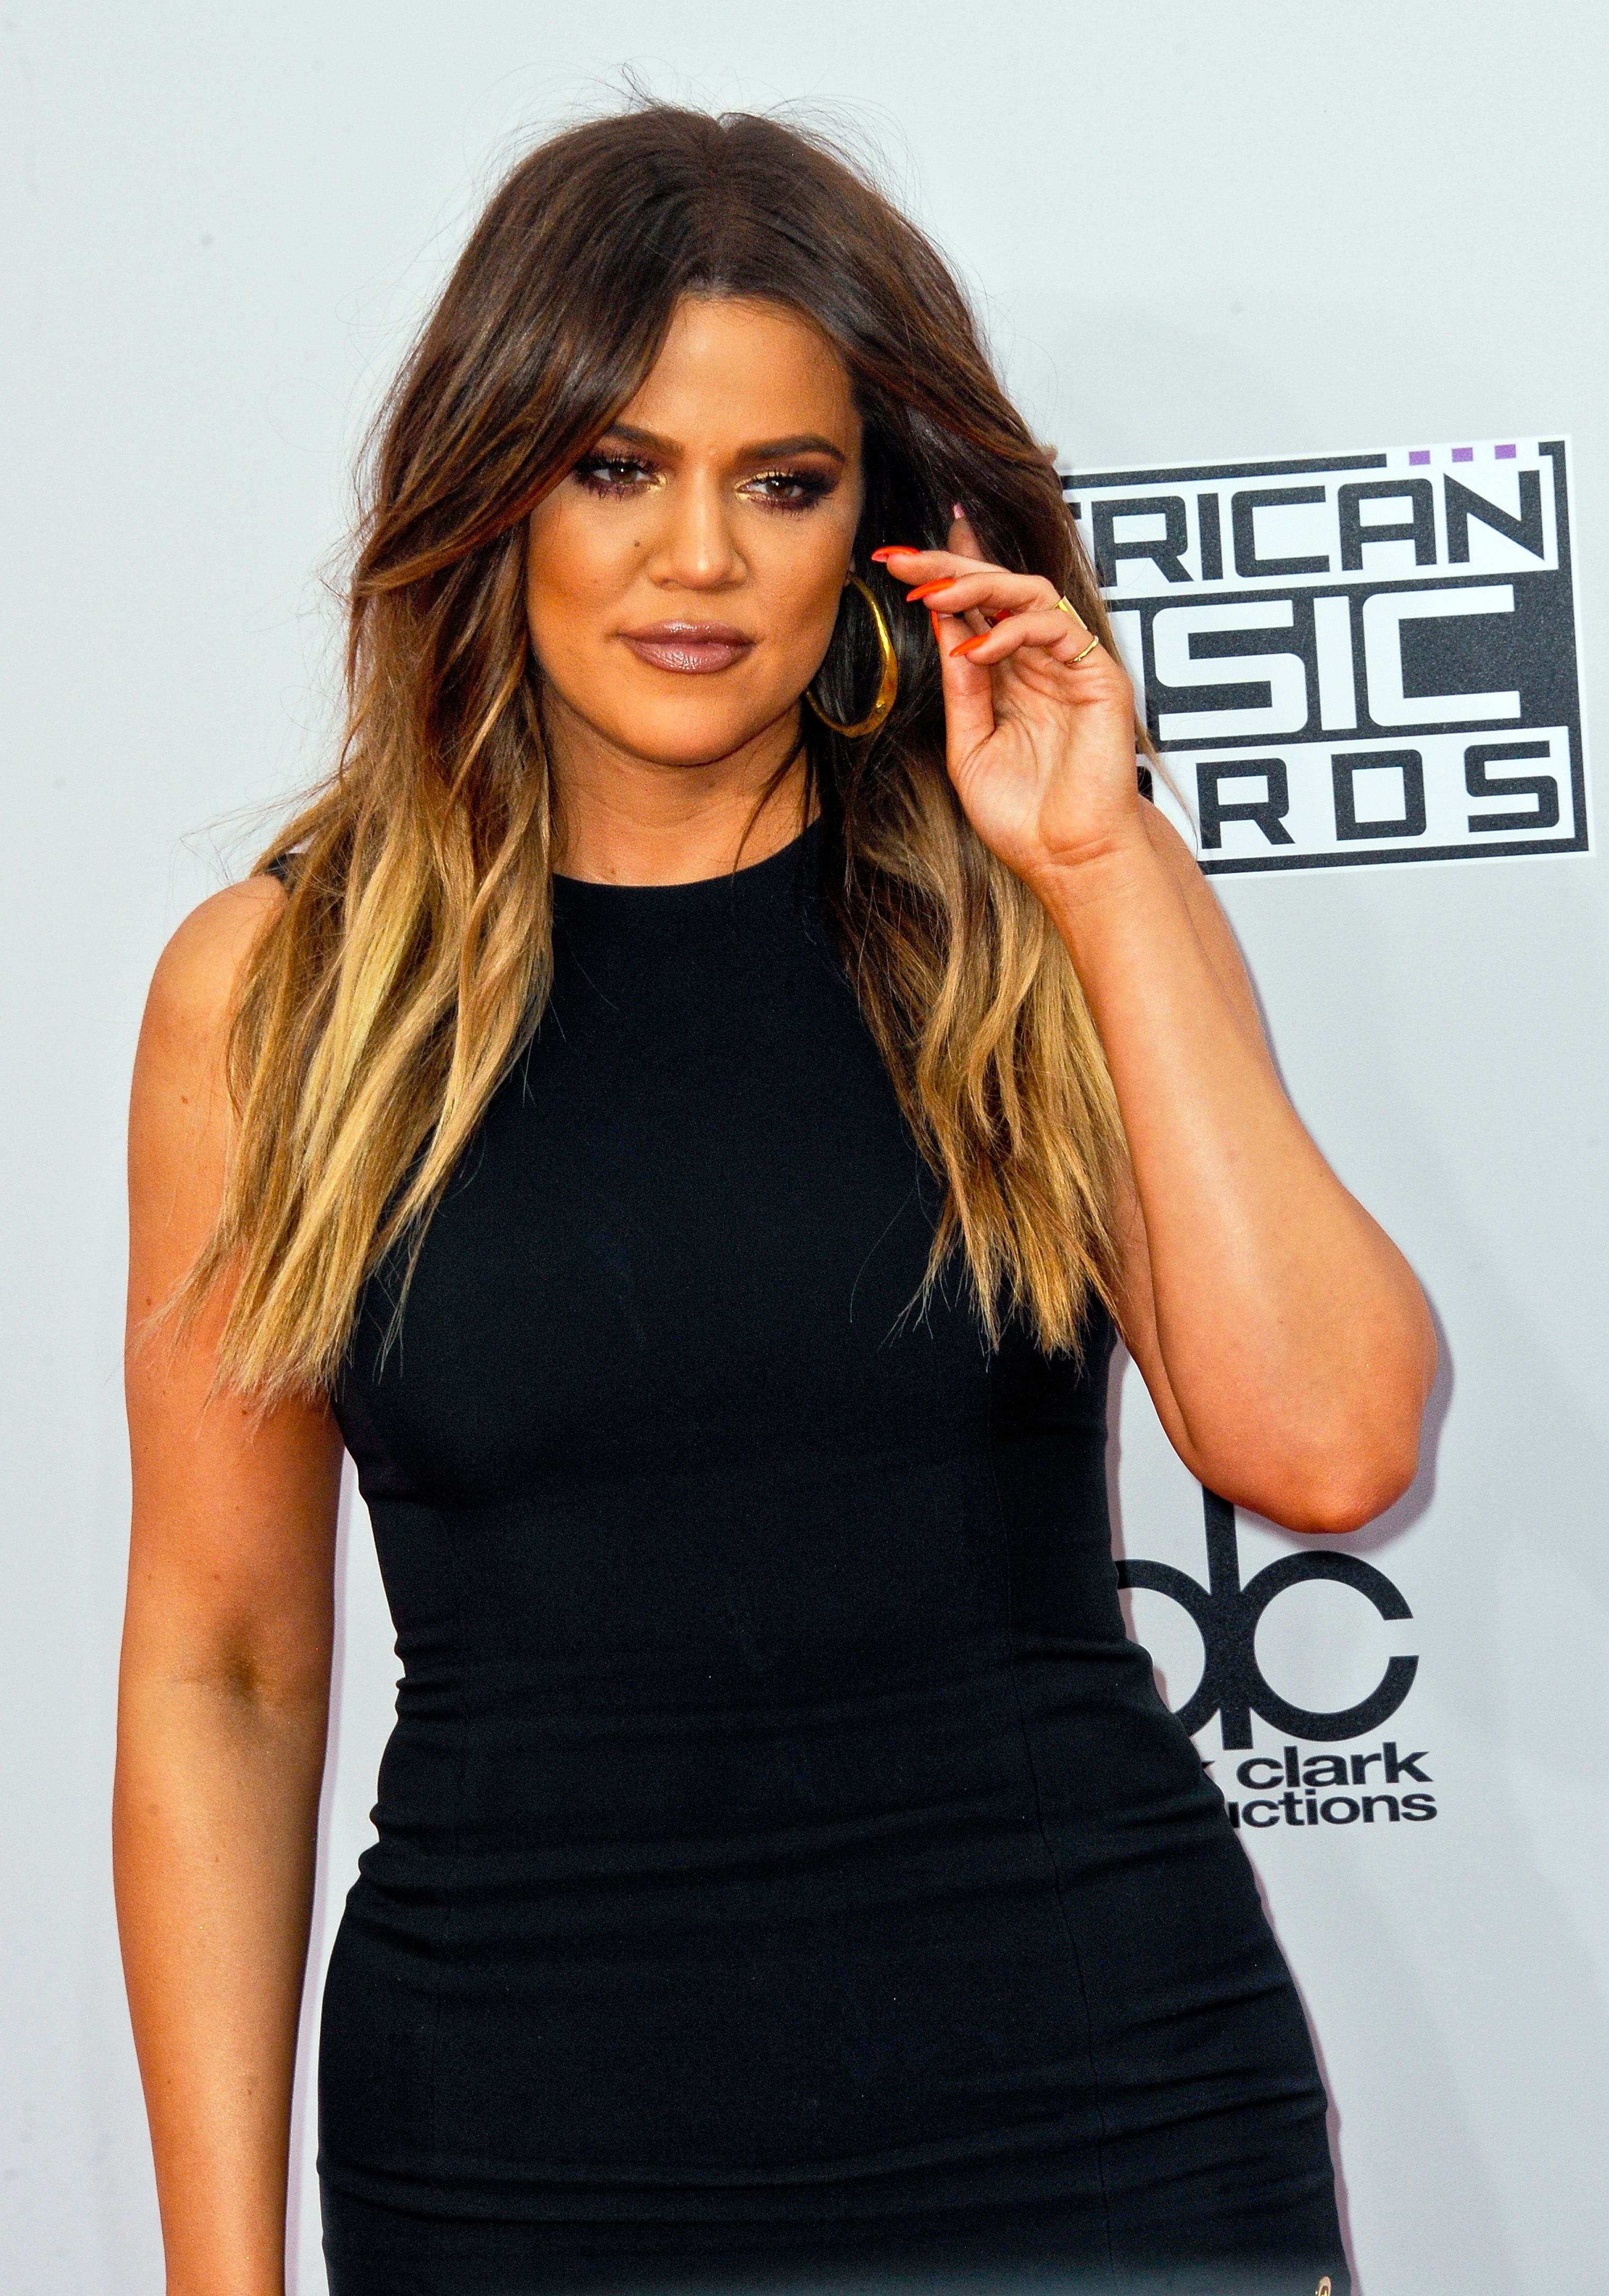 Khloe Kardashian at the 42nd Annual American Music Awards held at Nokia Theatre L.A. Live on November 23, 2014 | Photo: Getty Images